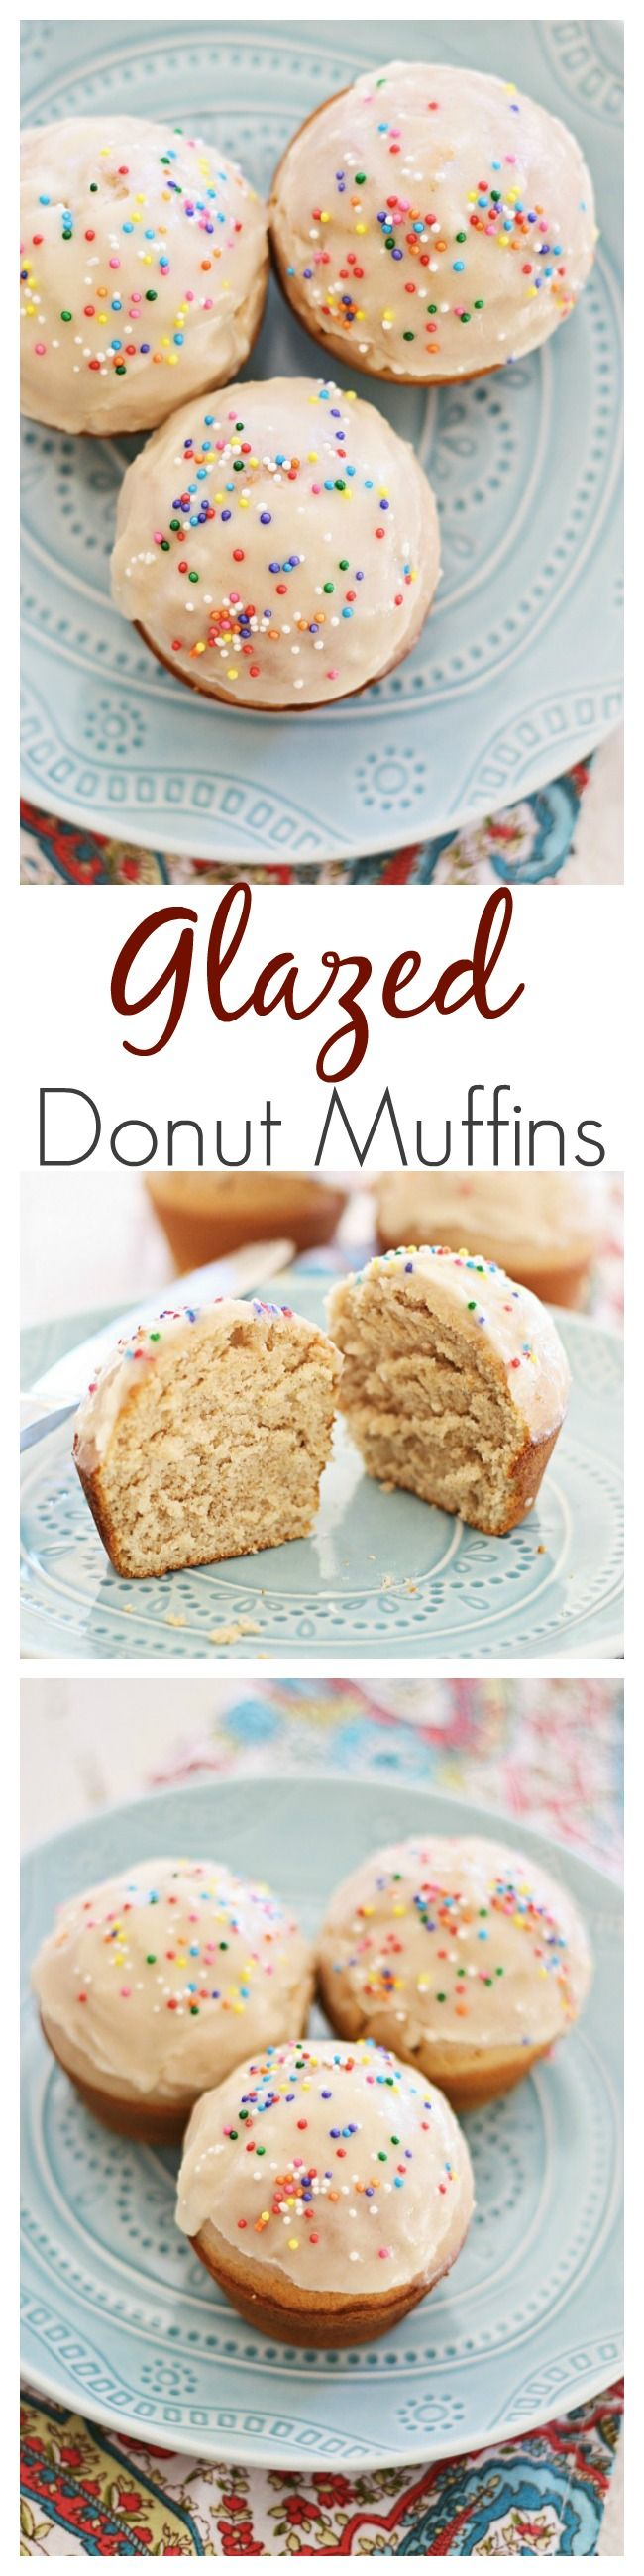 Glazed Doughnut Muffins - combining two favorites into one treat: doughnut, muffins, and glazed with sugar. Sinfully good and you'll want more | rasamalaysia.com